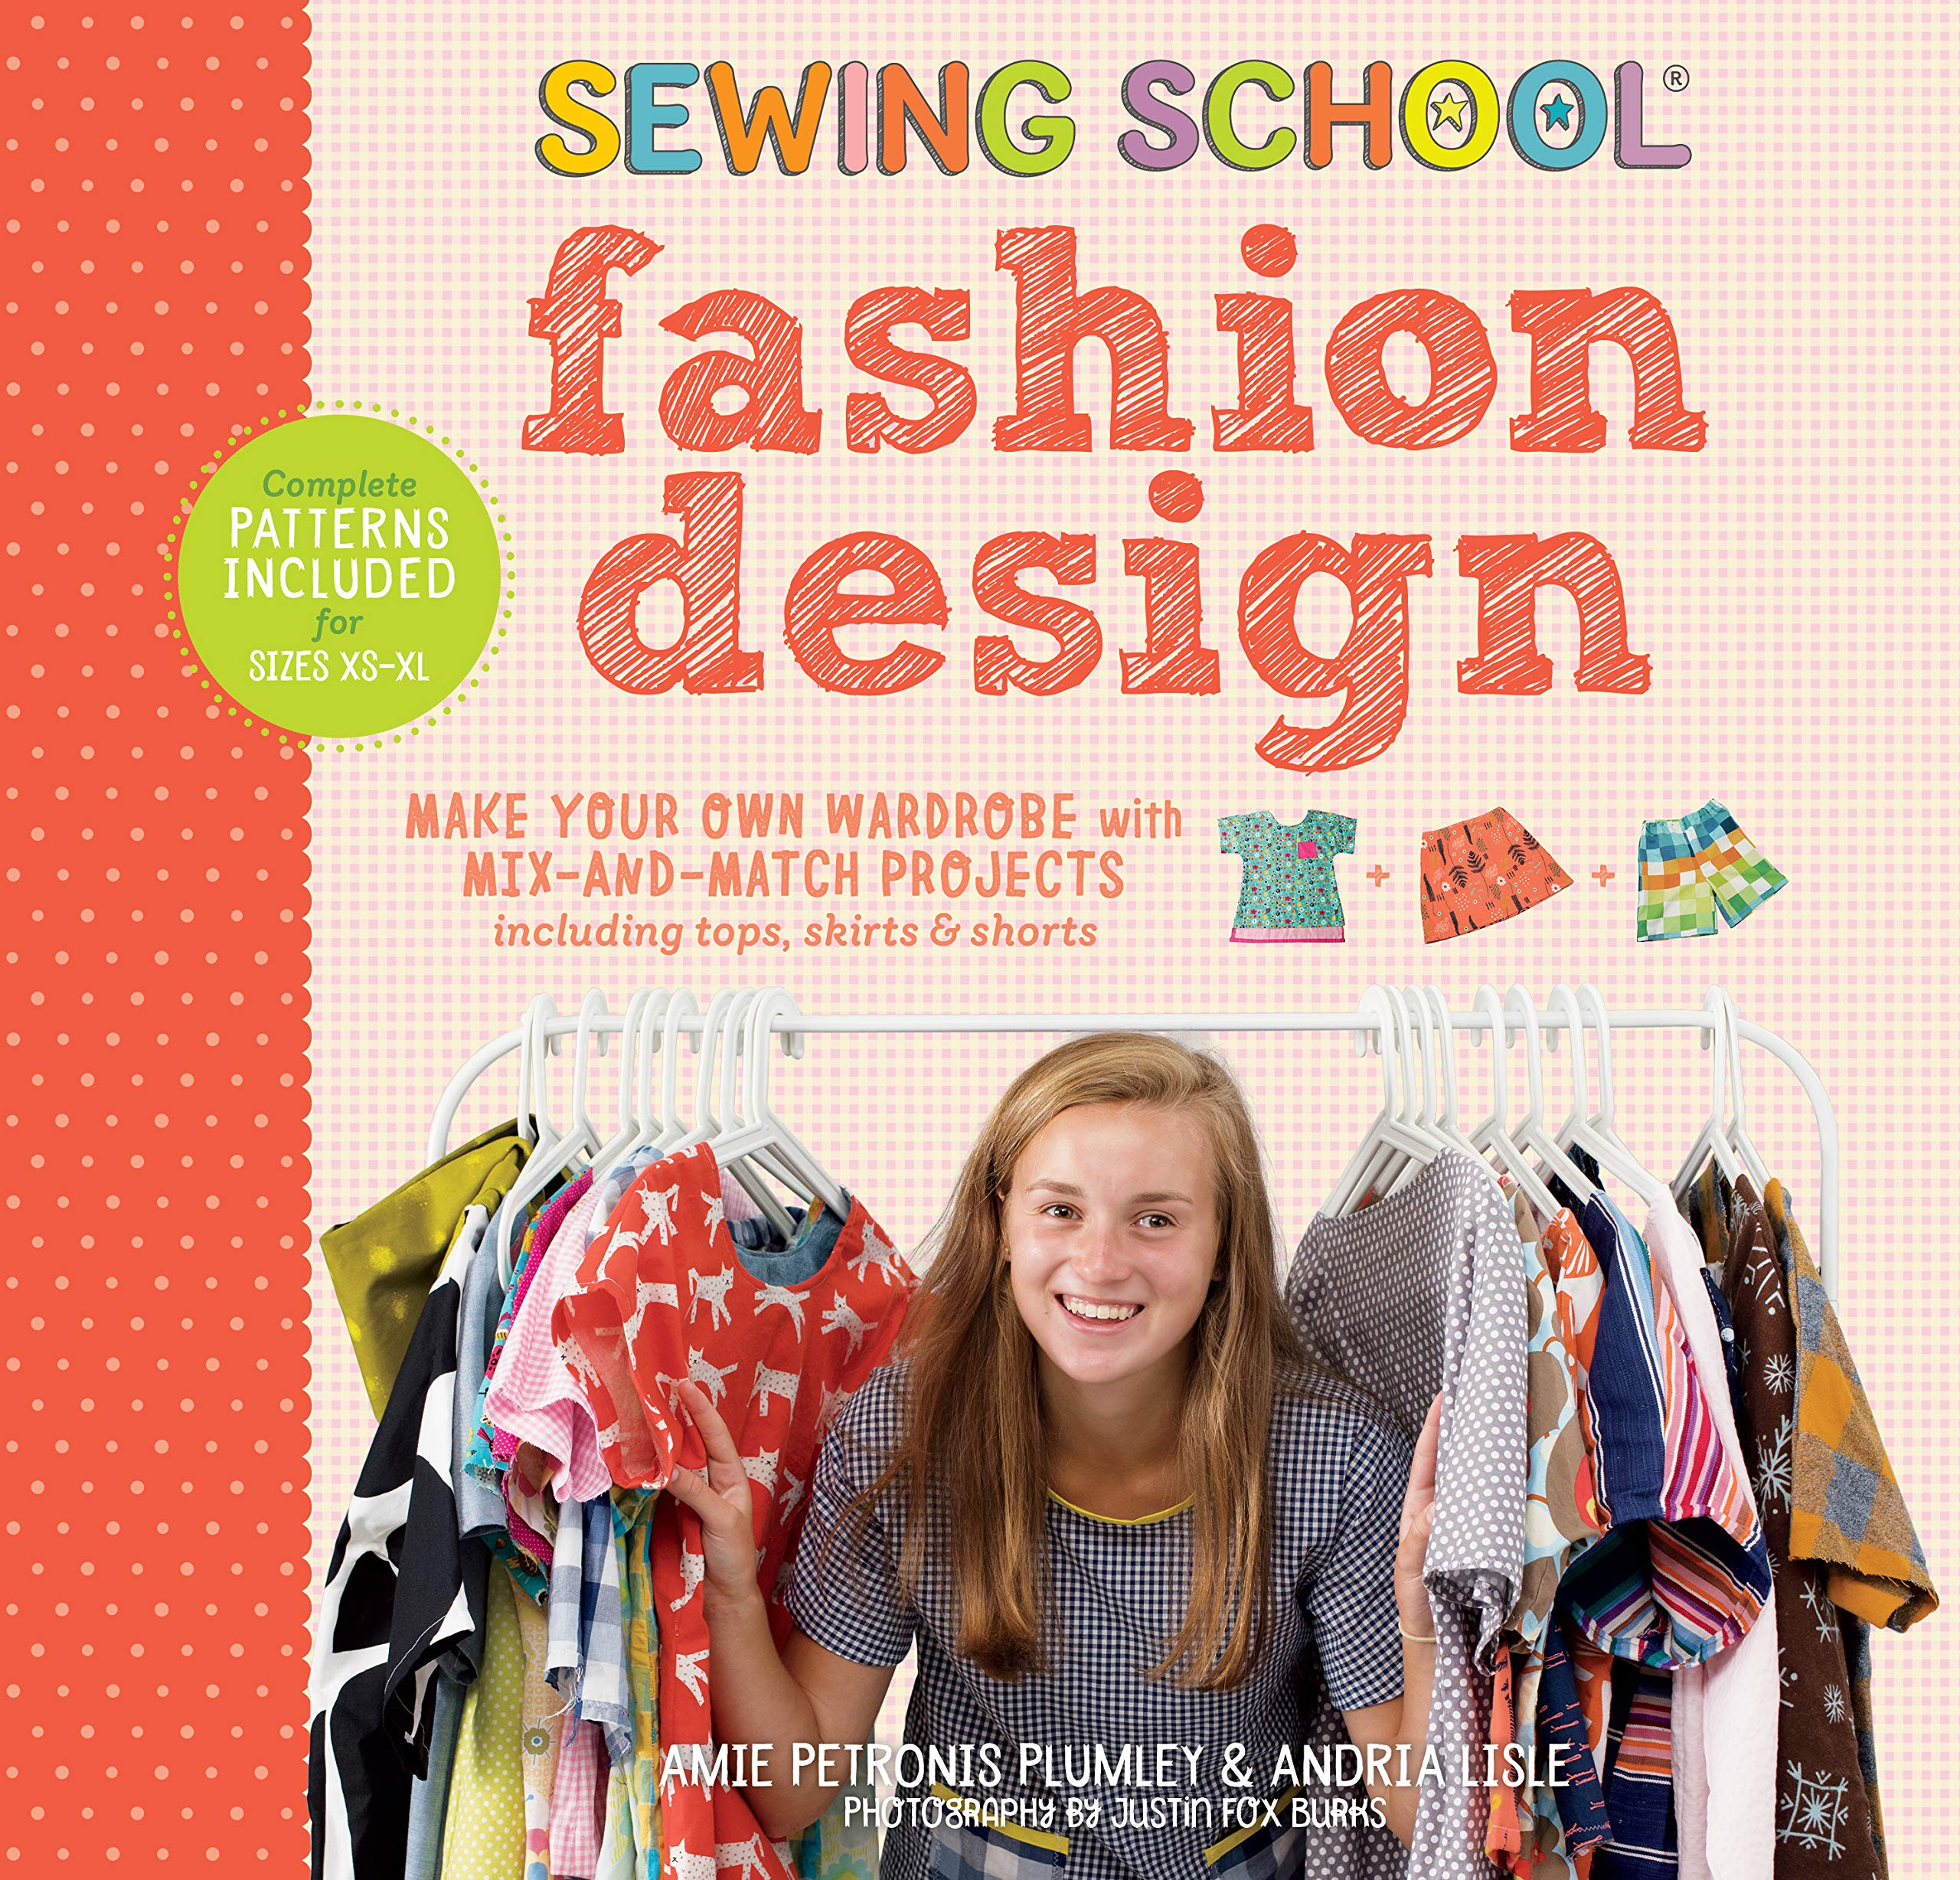 Sewing School Fashion Design Match product image